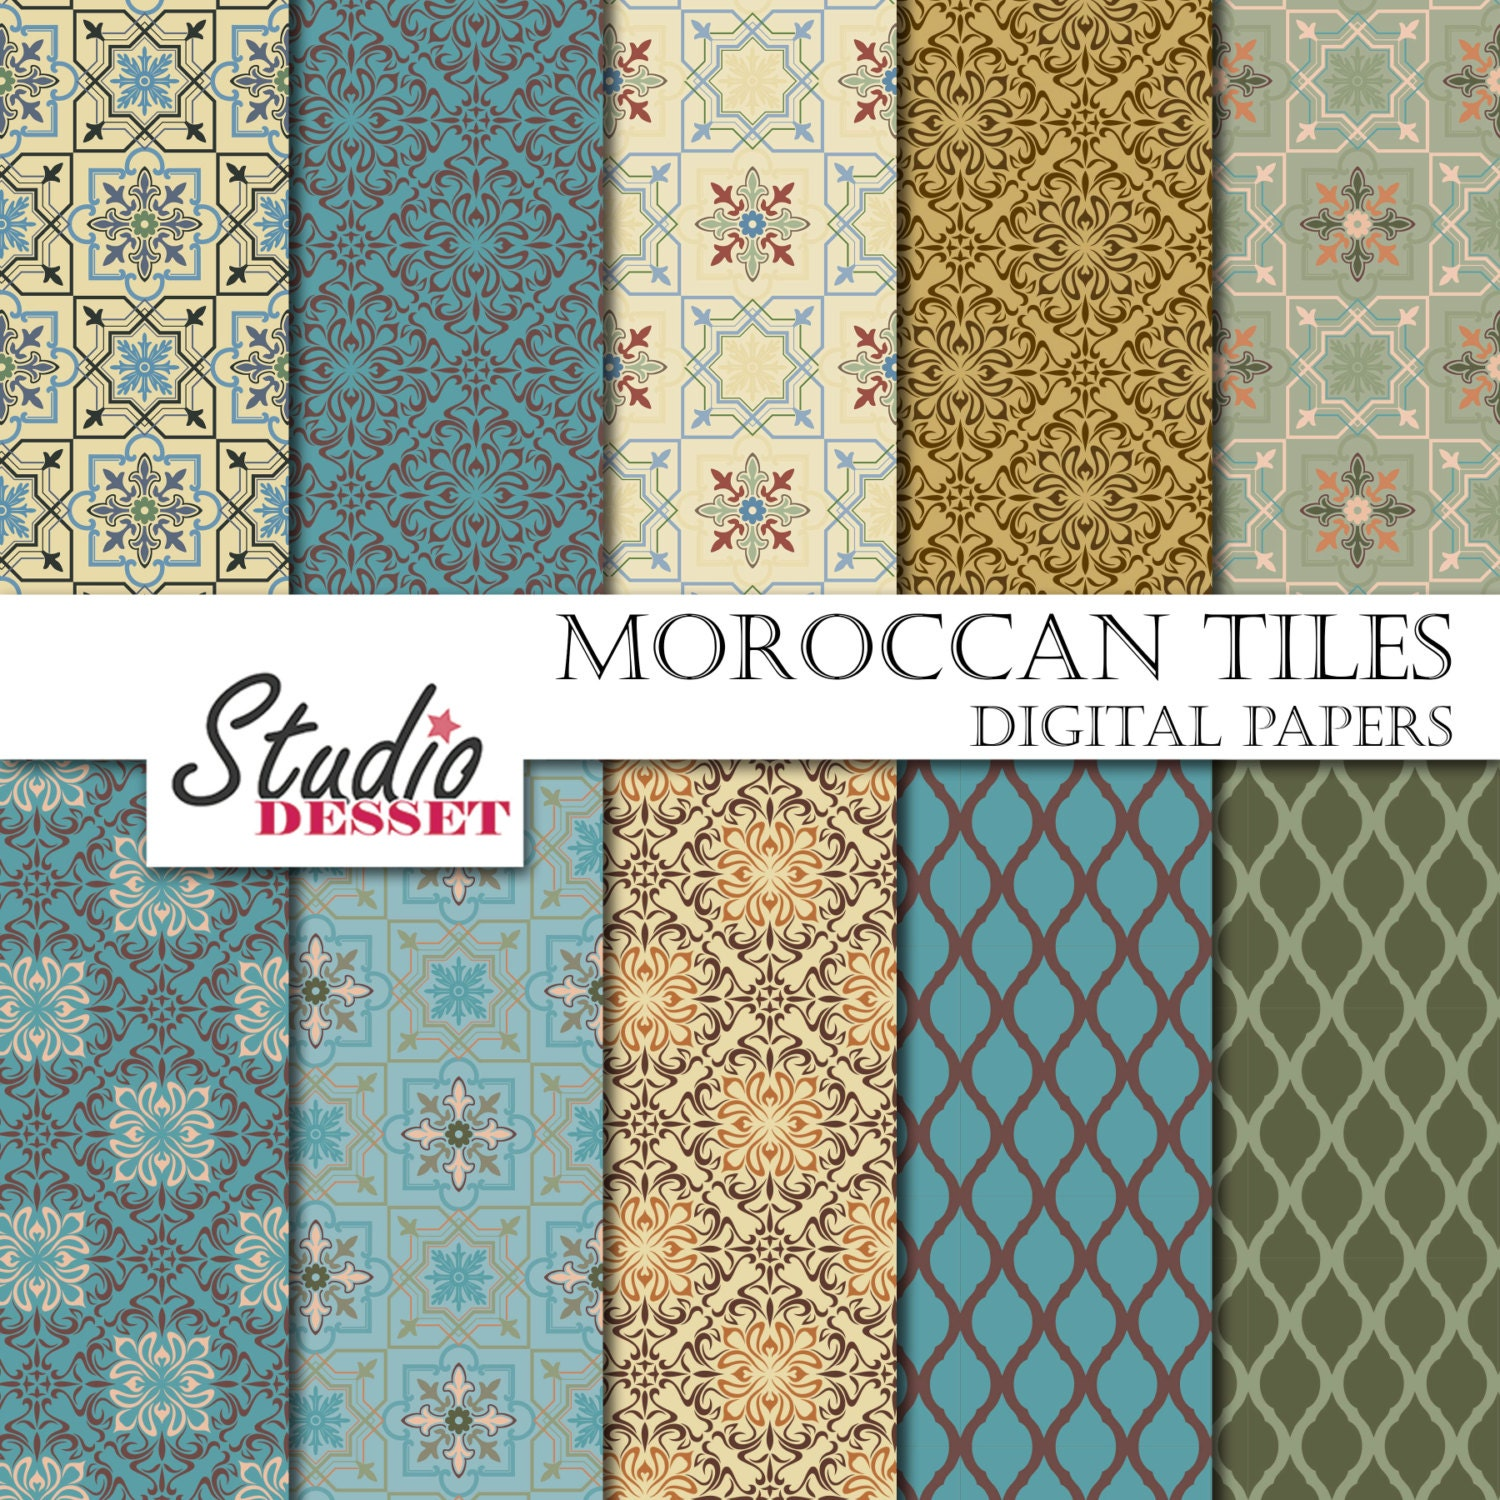 morocco tiles papers bohemian digital paper in blue and. Black Bedroom Furniture Sets. Home Design Ideas